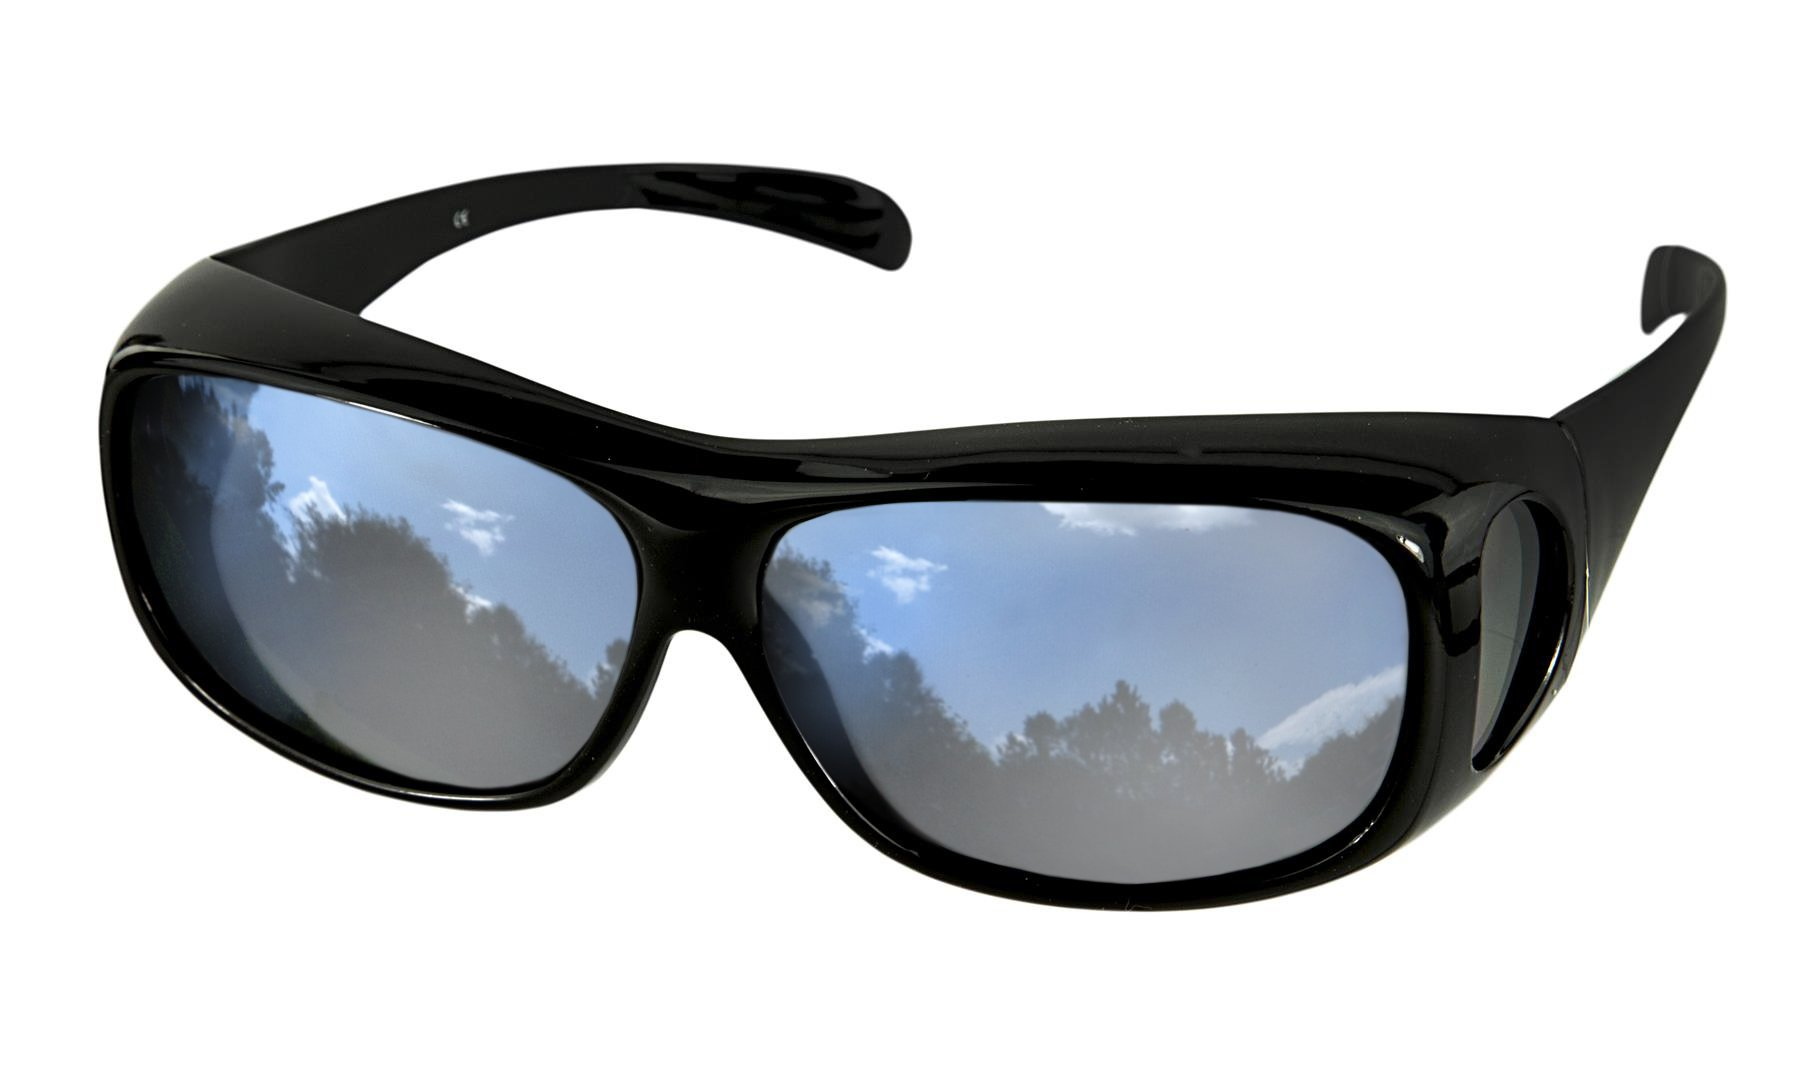 LensCovers Sunglasses - Wear Over Prescription Glasses. Size Large Slim with Reflective Polarized Lens